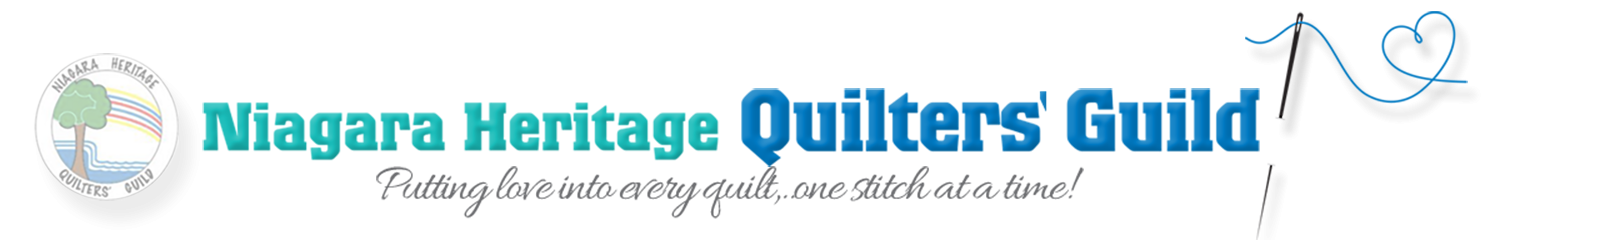 Niagara Heritage Quilters Guild